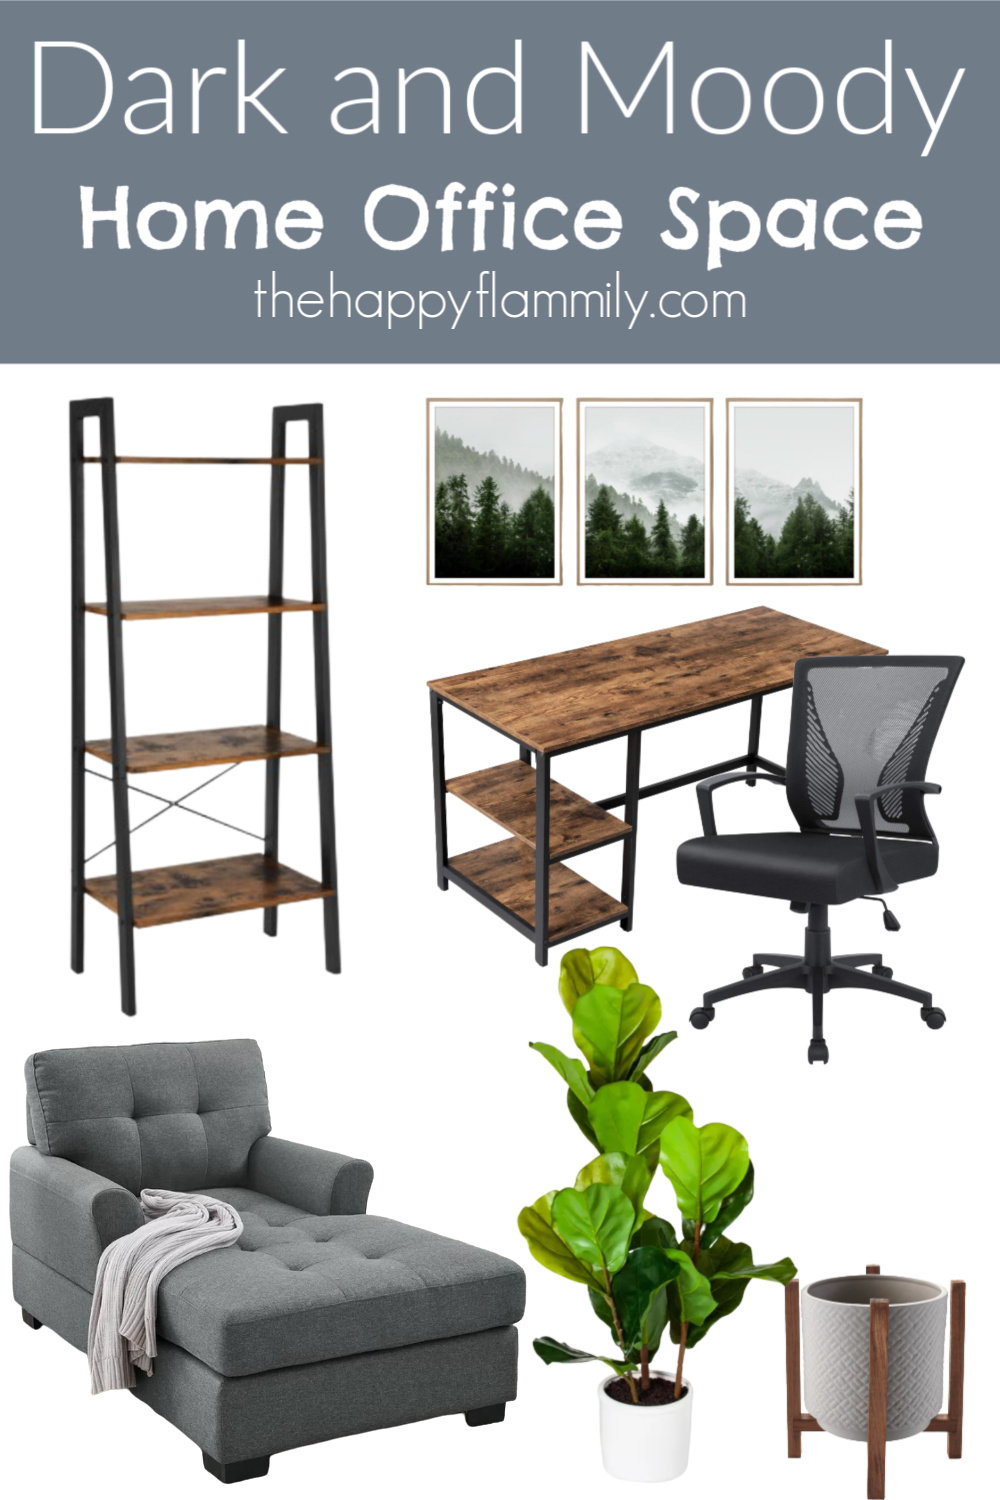 Dark home office ideas. Black office walls. Black office furniture. Industrial modern home office. Black office desk. Dark and moody home office inspiration. Sherwin Williams navy home office. #homedecor #darkandmoody #dark #sherwinwilliams #industrialmodern #modern #modernfurniture